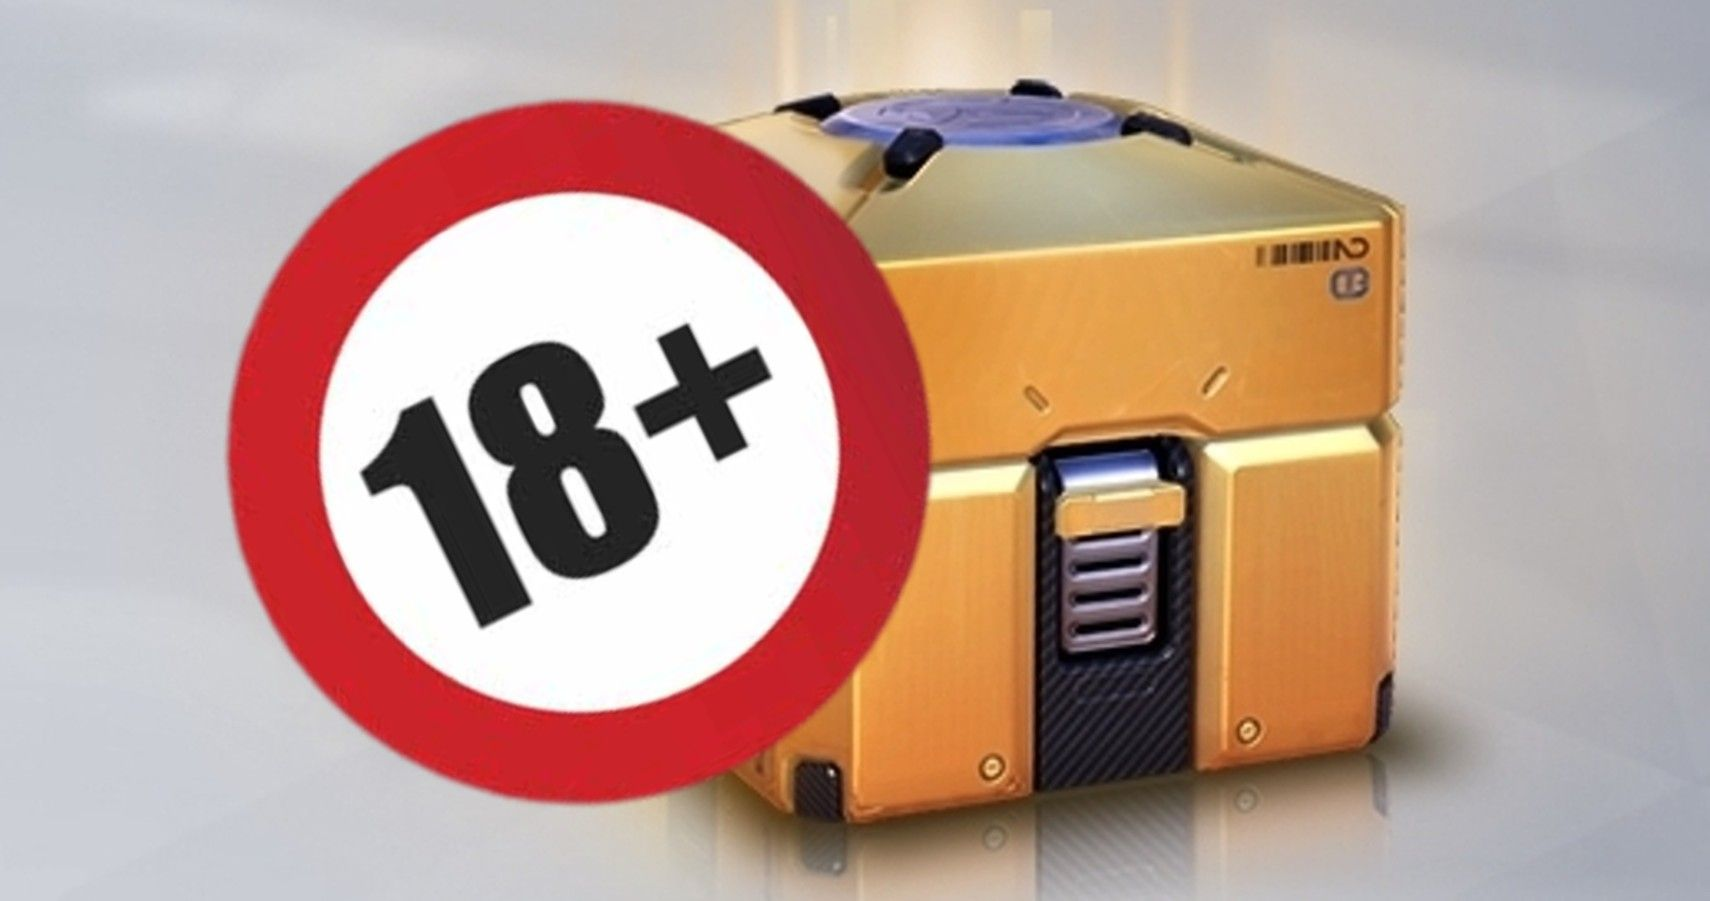 All Games Featuring Loot Boxes May Soon Carry An 18+ Rating In Germany